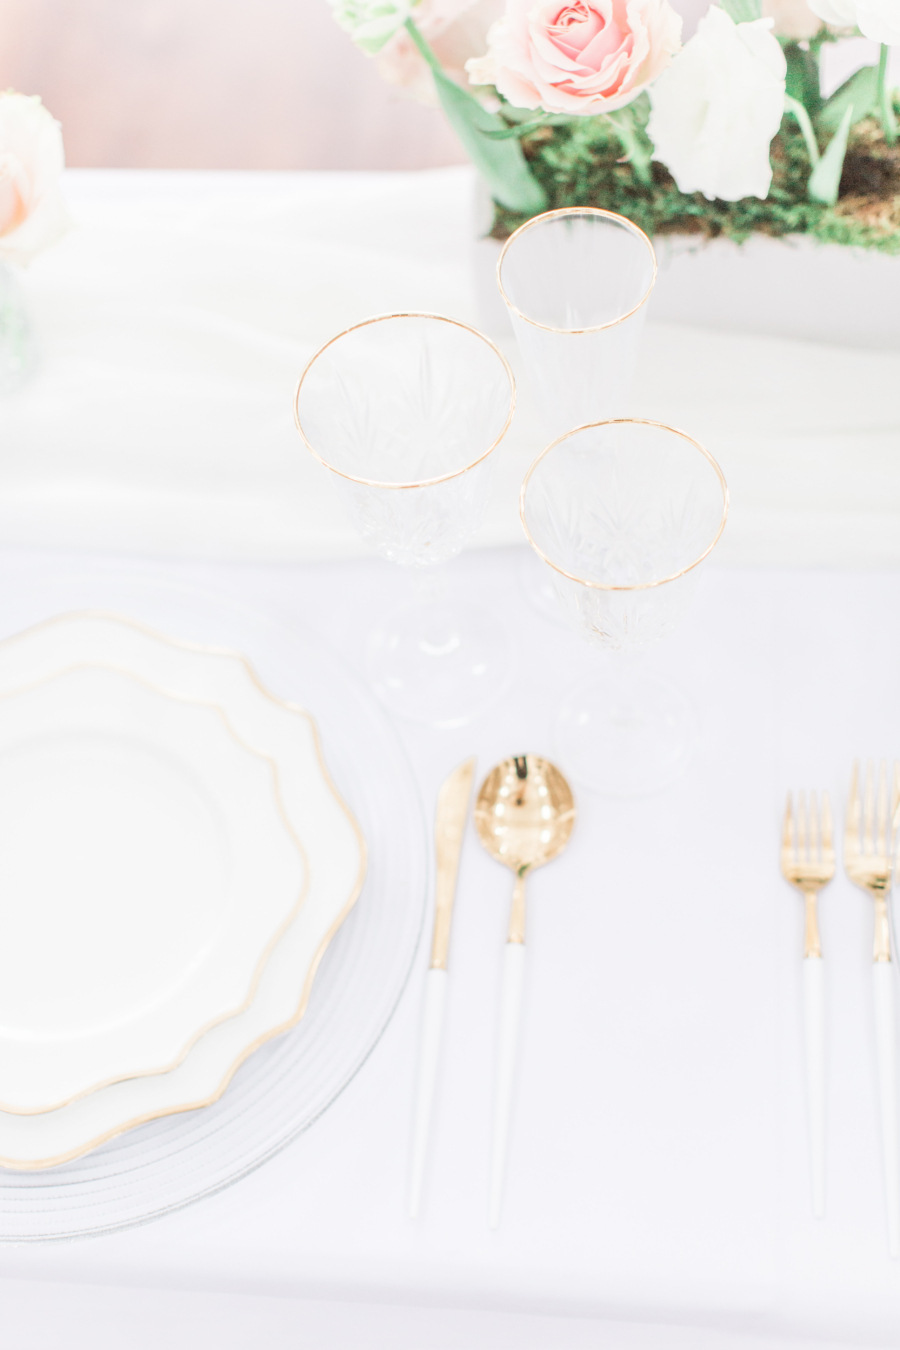 White and gold wedding table decor